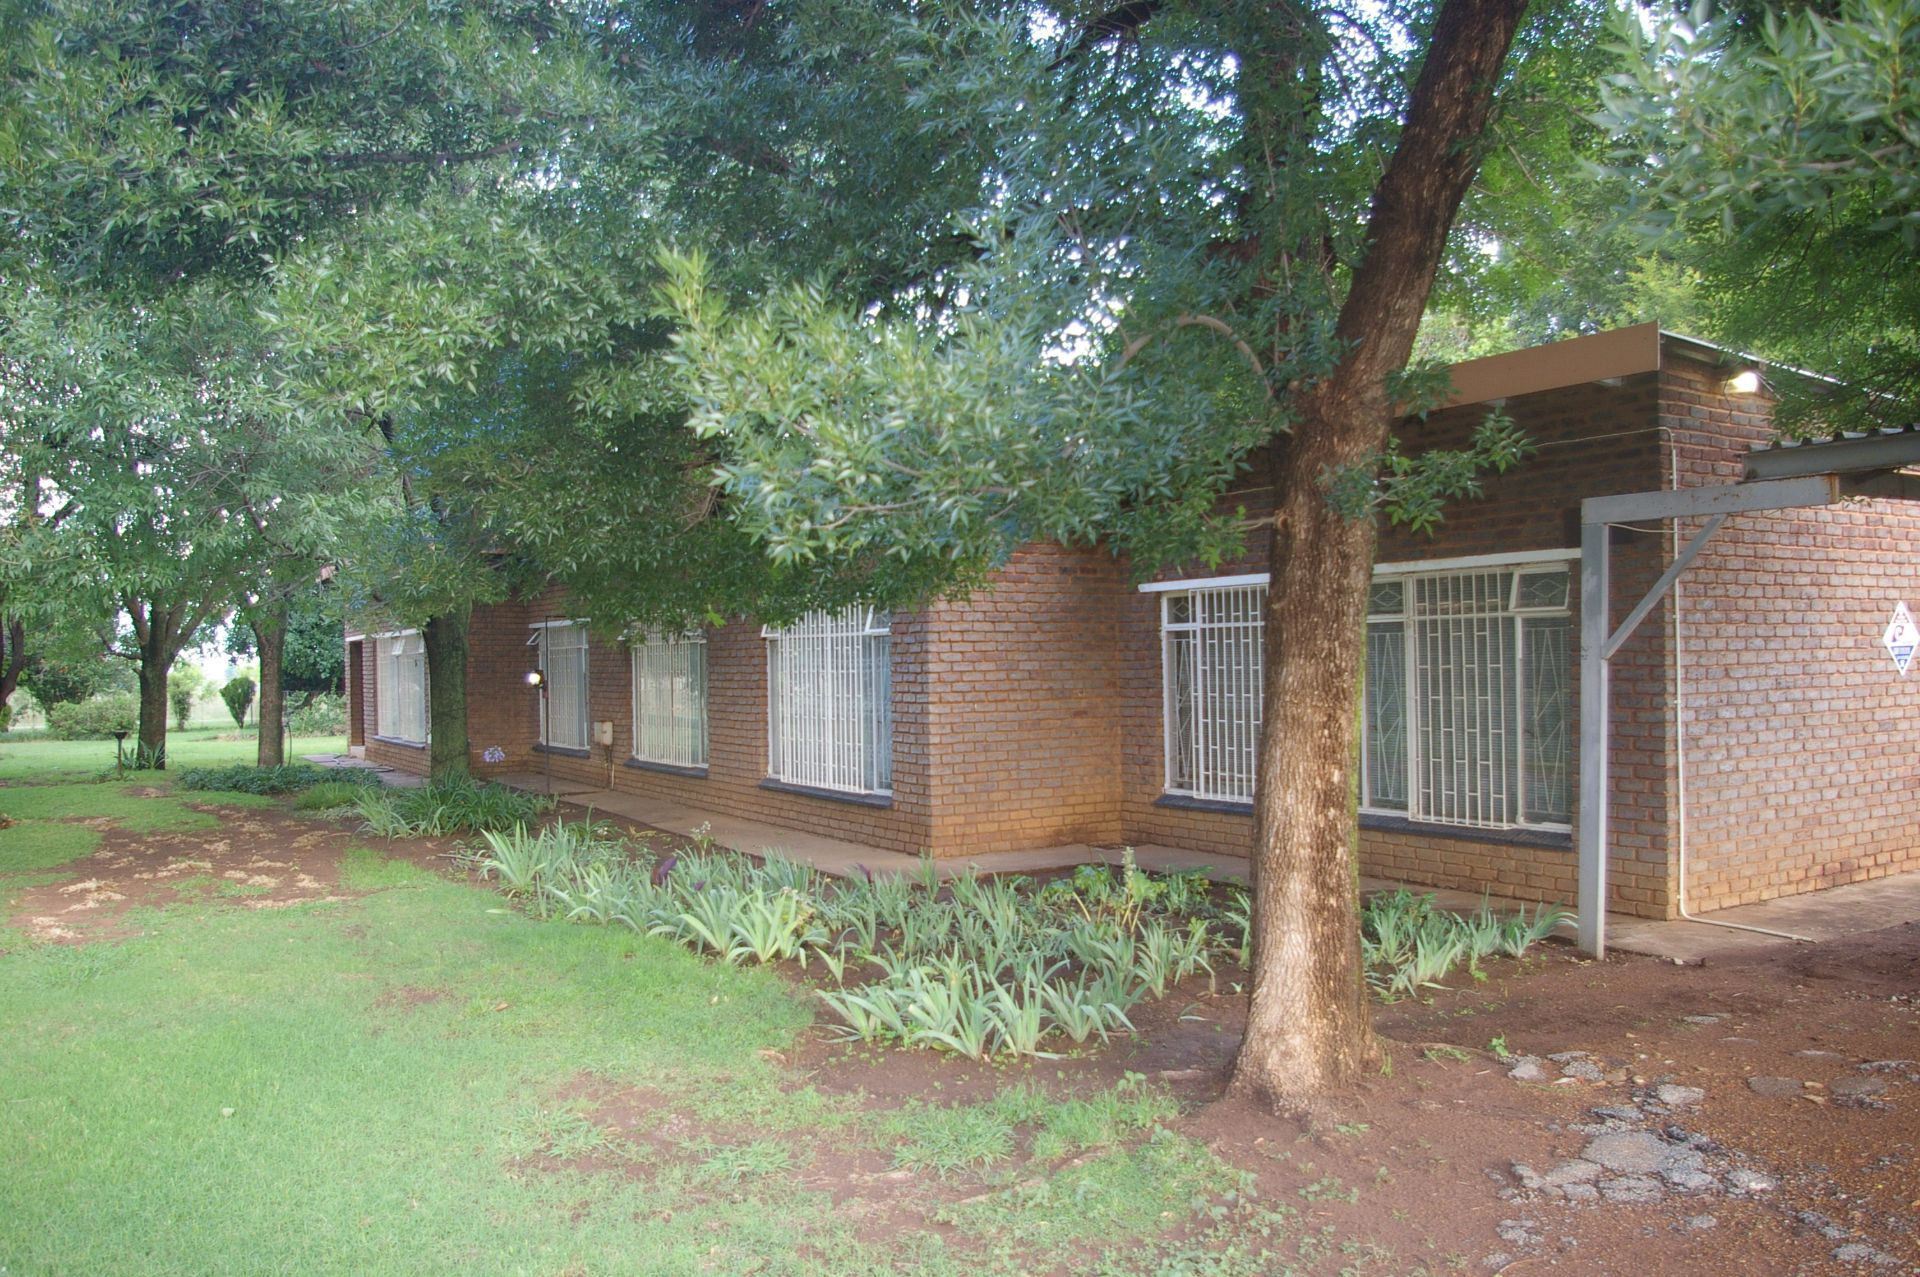 Potchefstroom, Vyfhoek Property  | Houses For Sale Vyfhoek, VYFHOEK, House 4 bedrooms property for sale Price:1,600,000